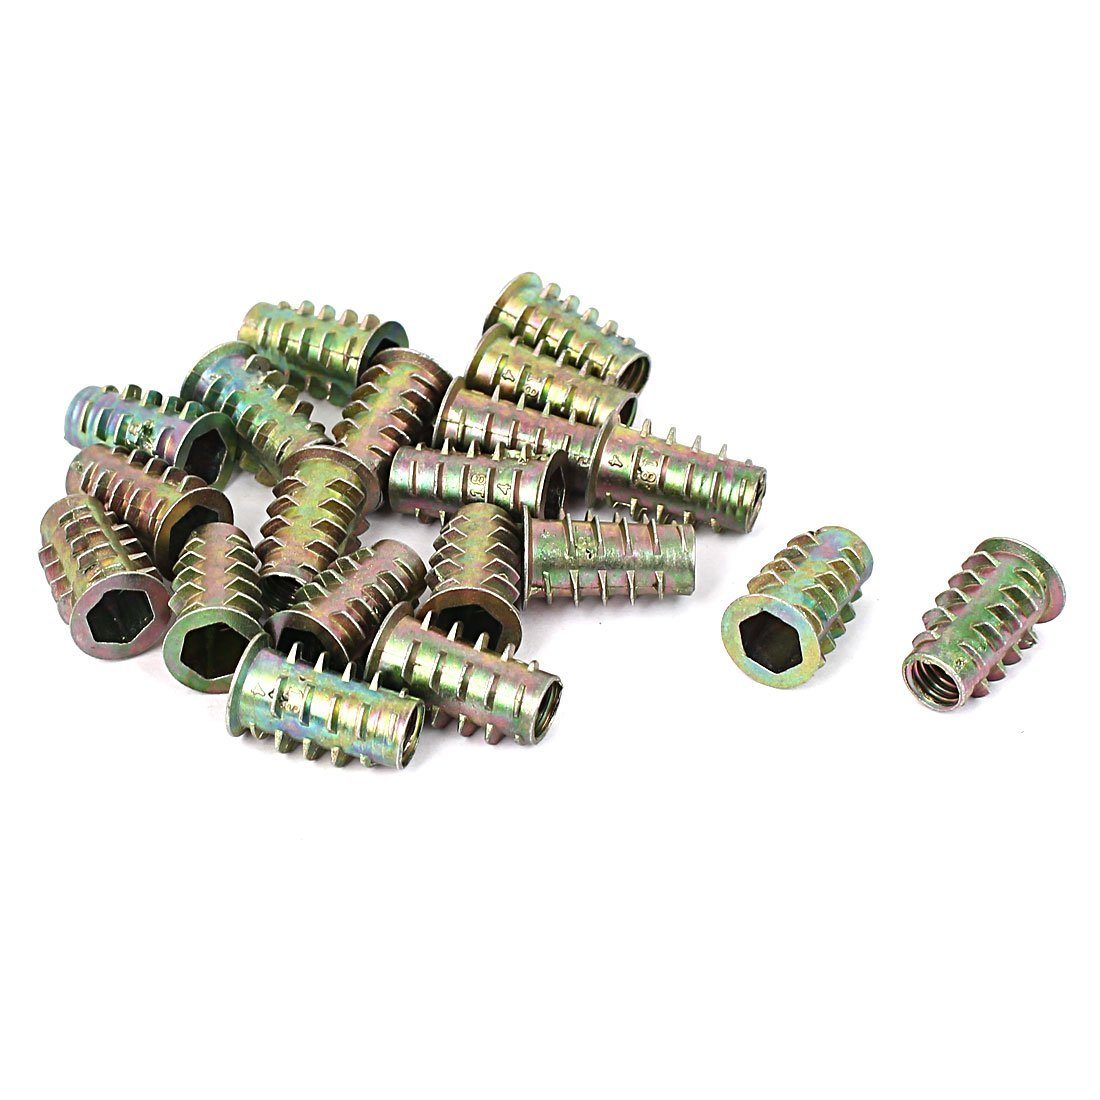 uxcell a16011400ux0237 Furniture Hex Drive Head Threaded Insert Nut M6x17mm for Wood Pack of 20